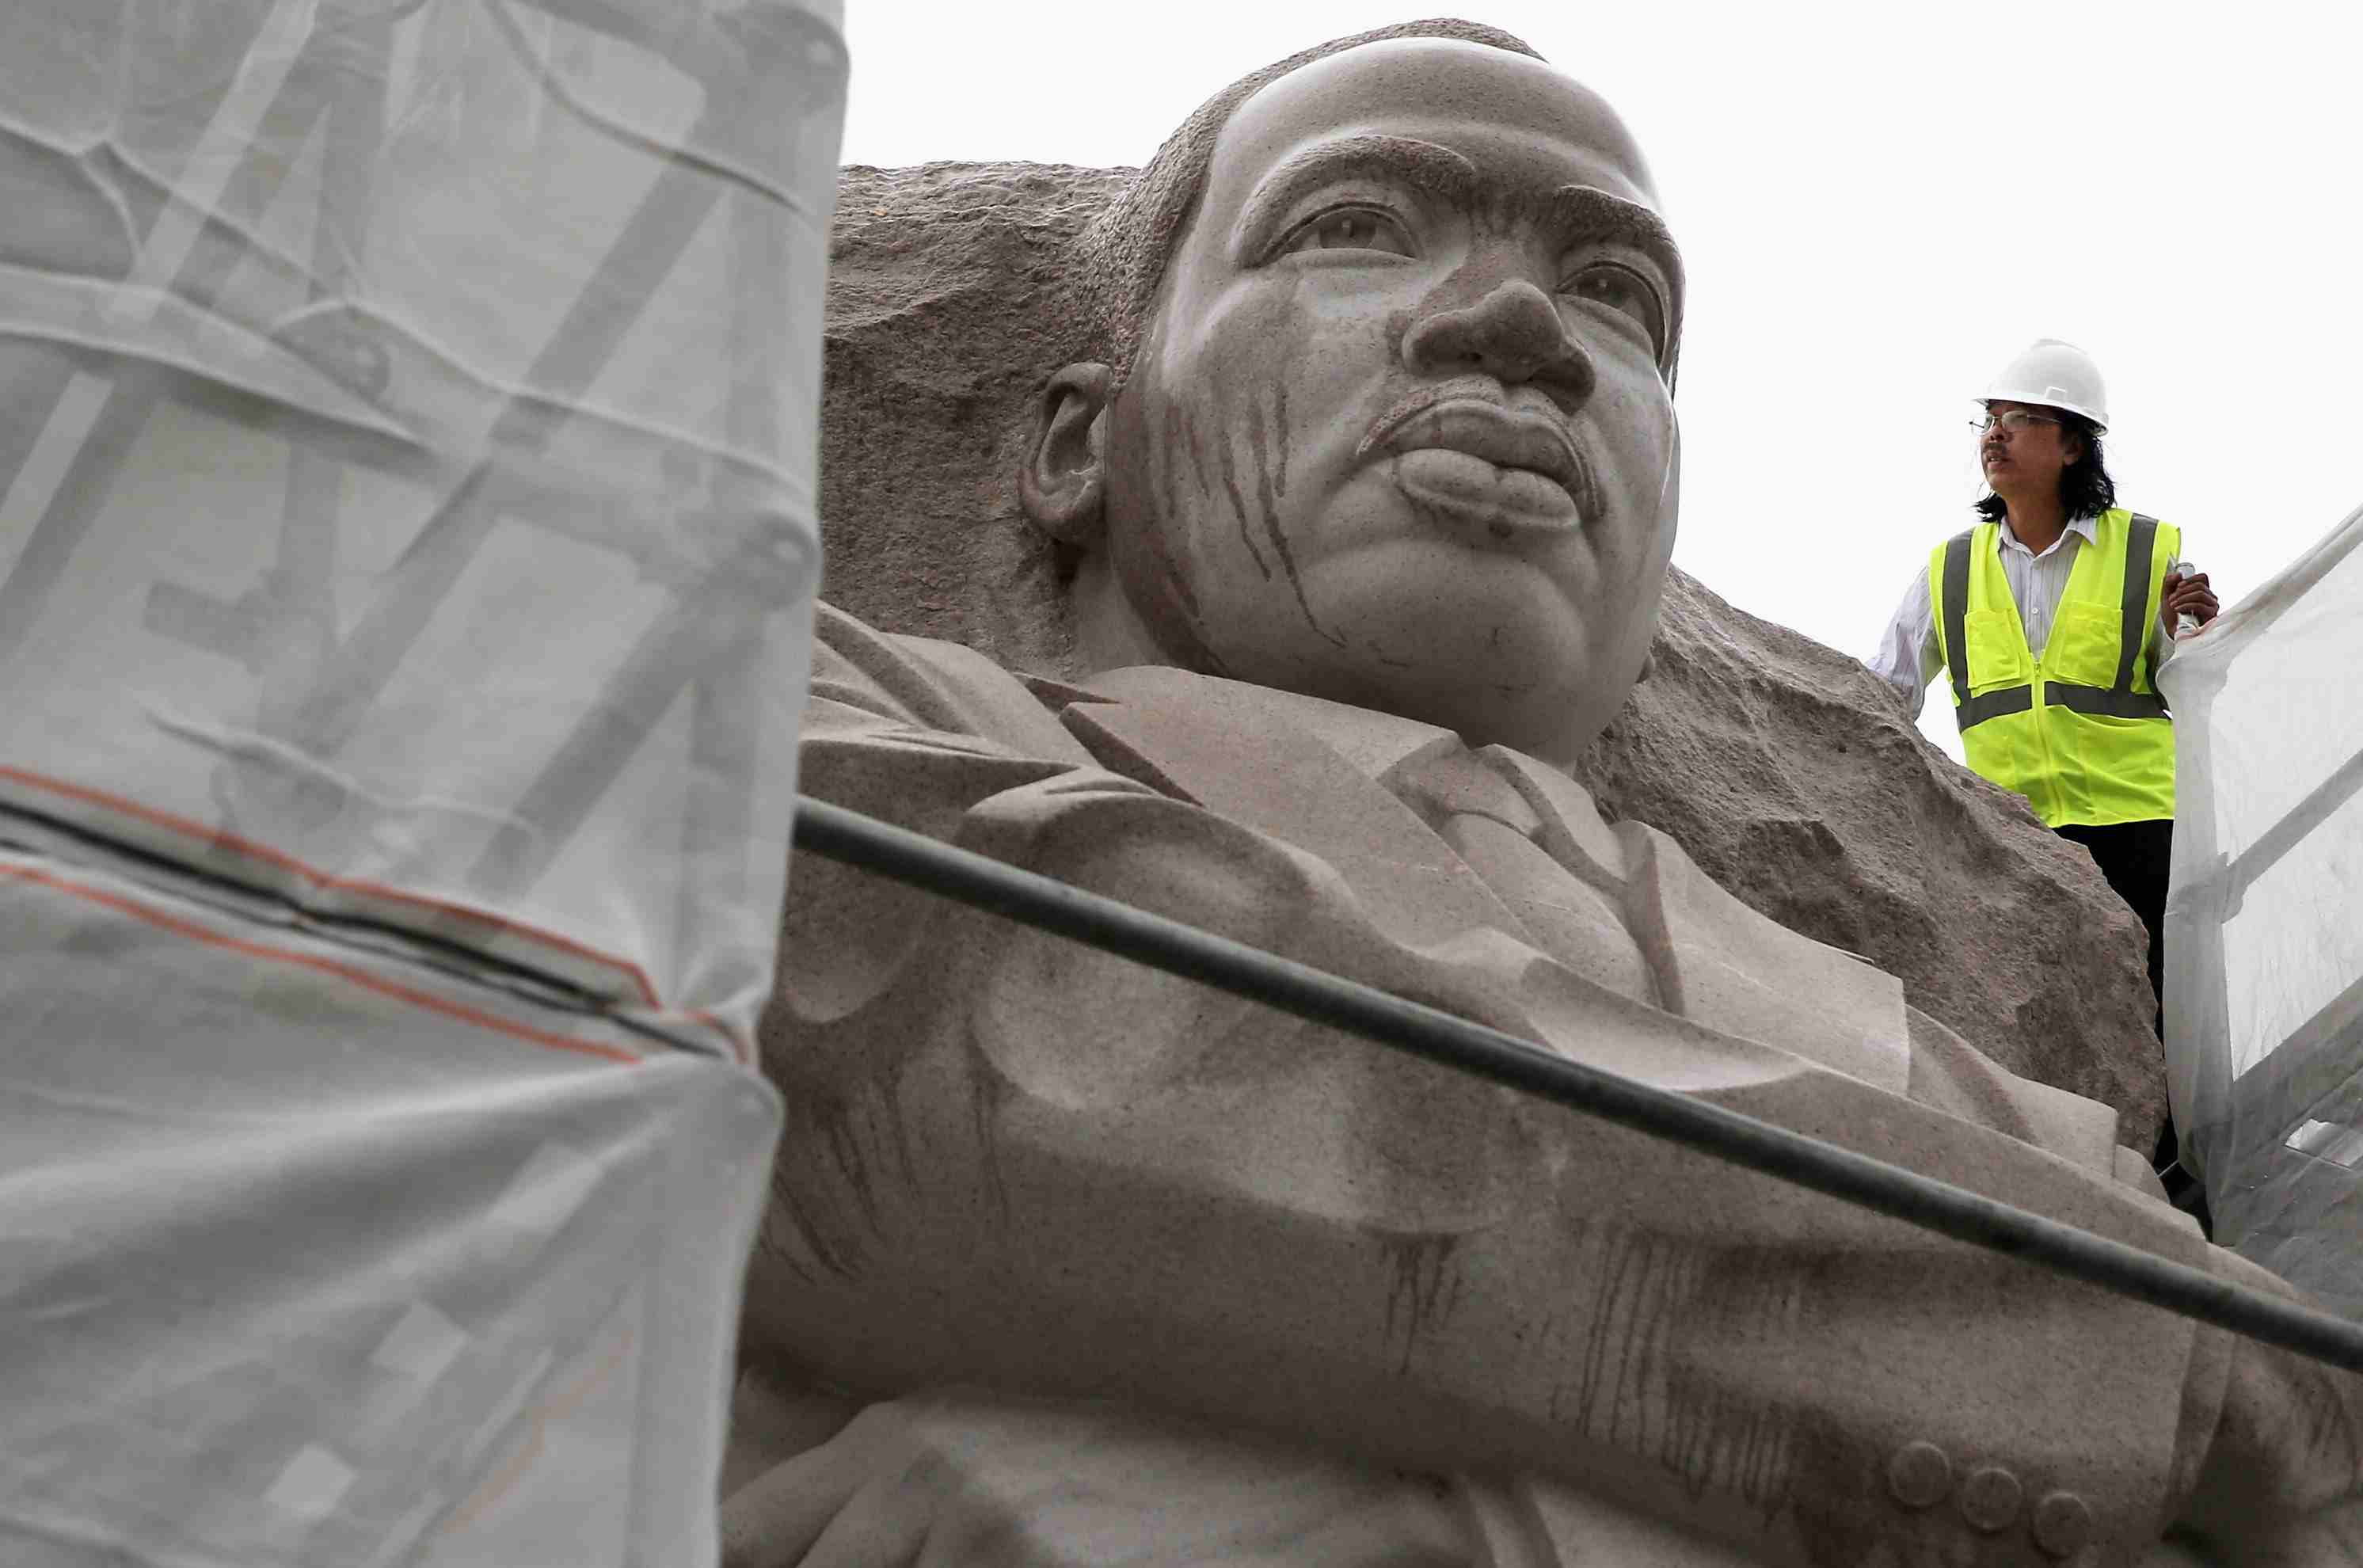 Sculptor Lei Yixin Examines Work Being Done To MLK Statue in 2013